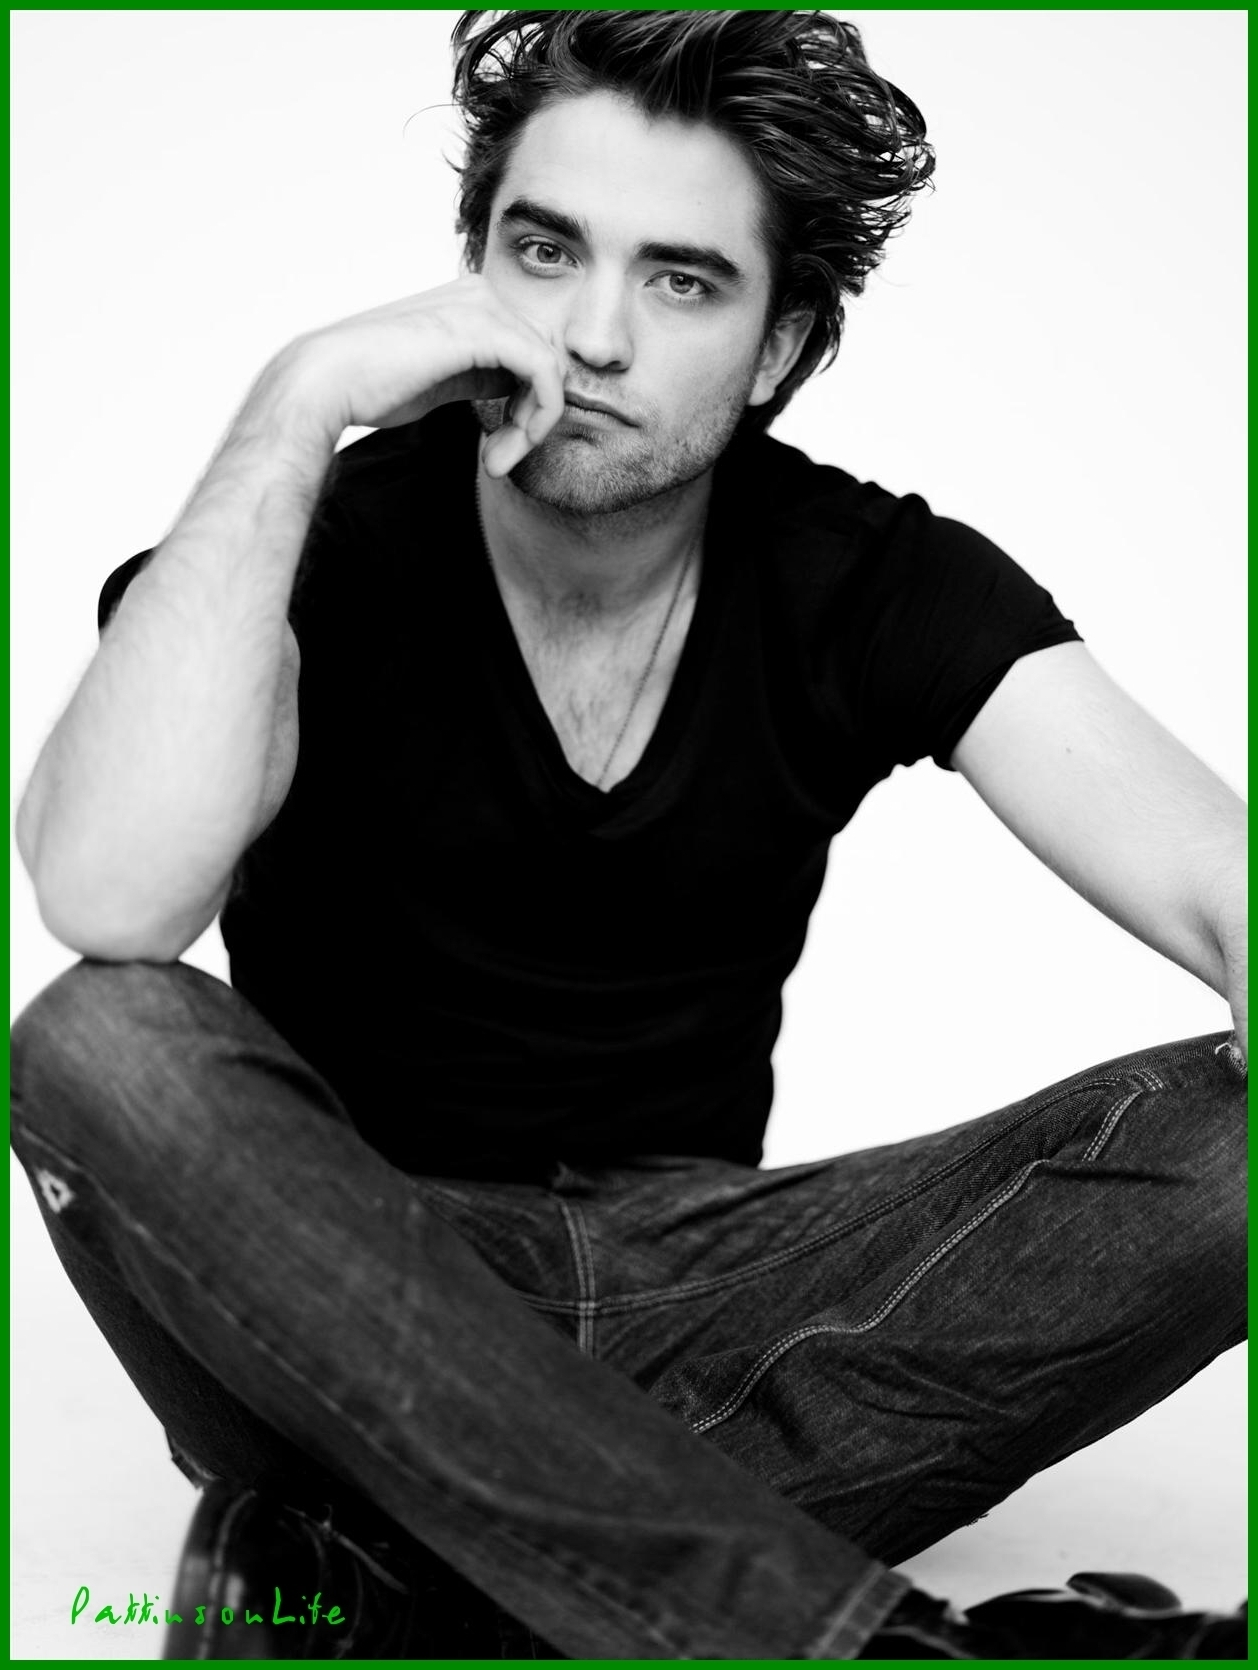 HQ Robert Pattinson outtakes from GQ shoot